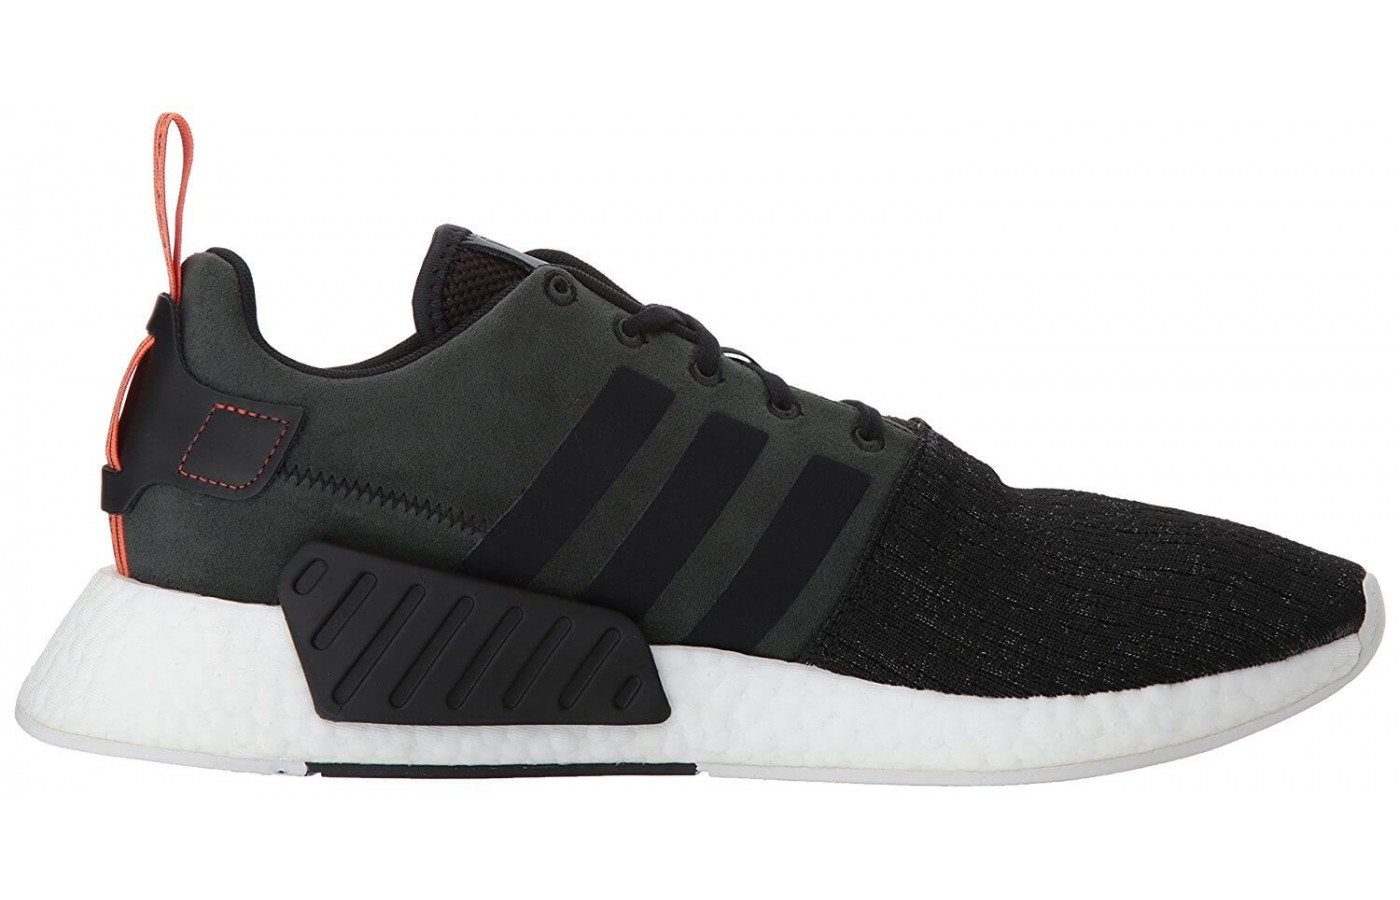 The Adidas NMD R2 features a Primeknit upper